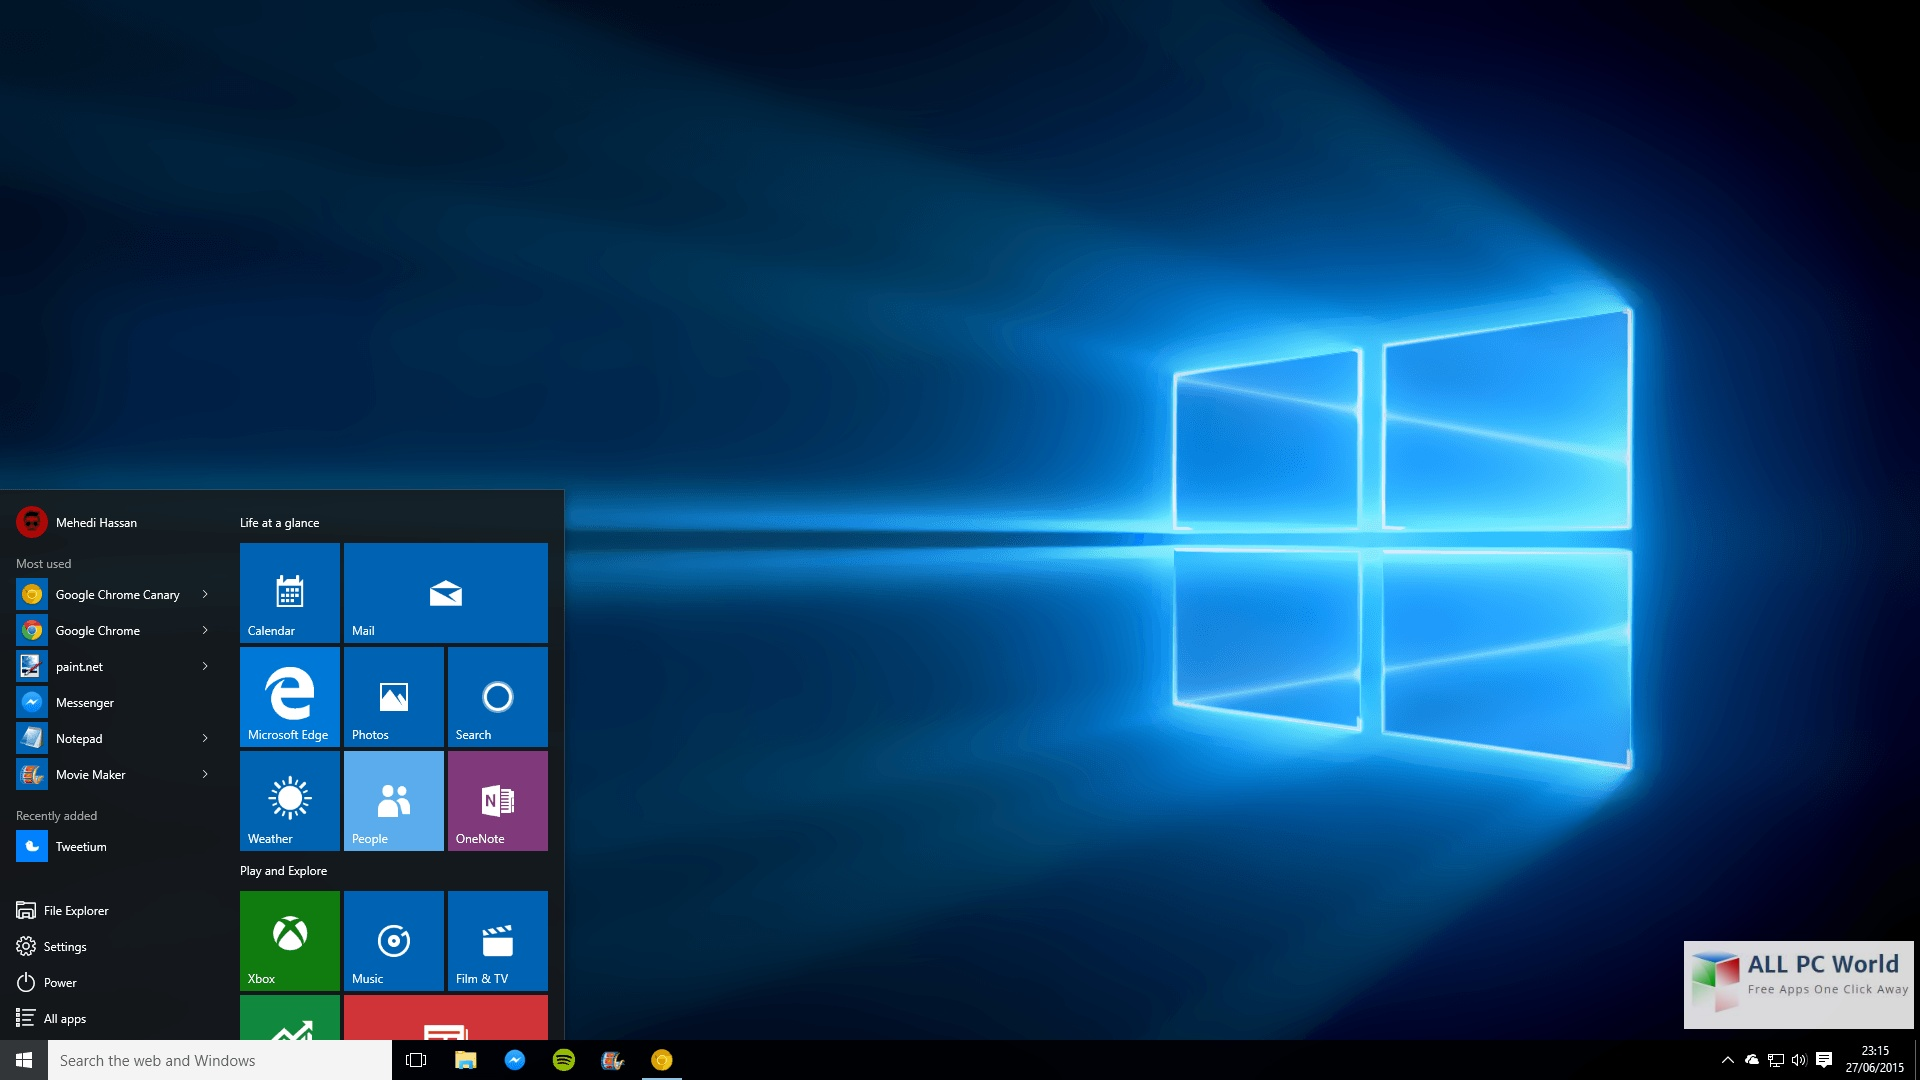 Download Windows 10 AIO Build 15063 250 May 2017 DVD ISO Free